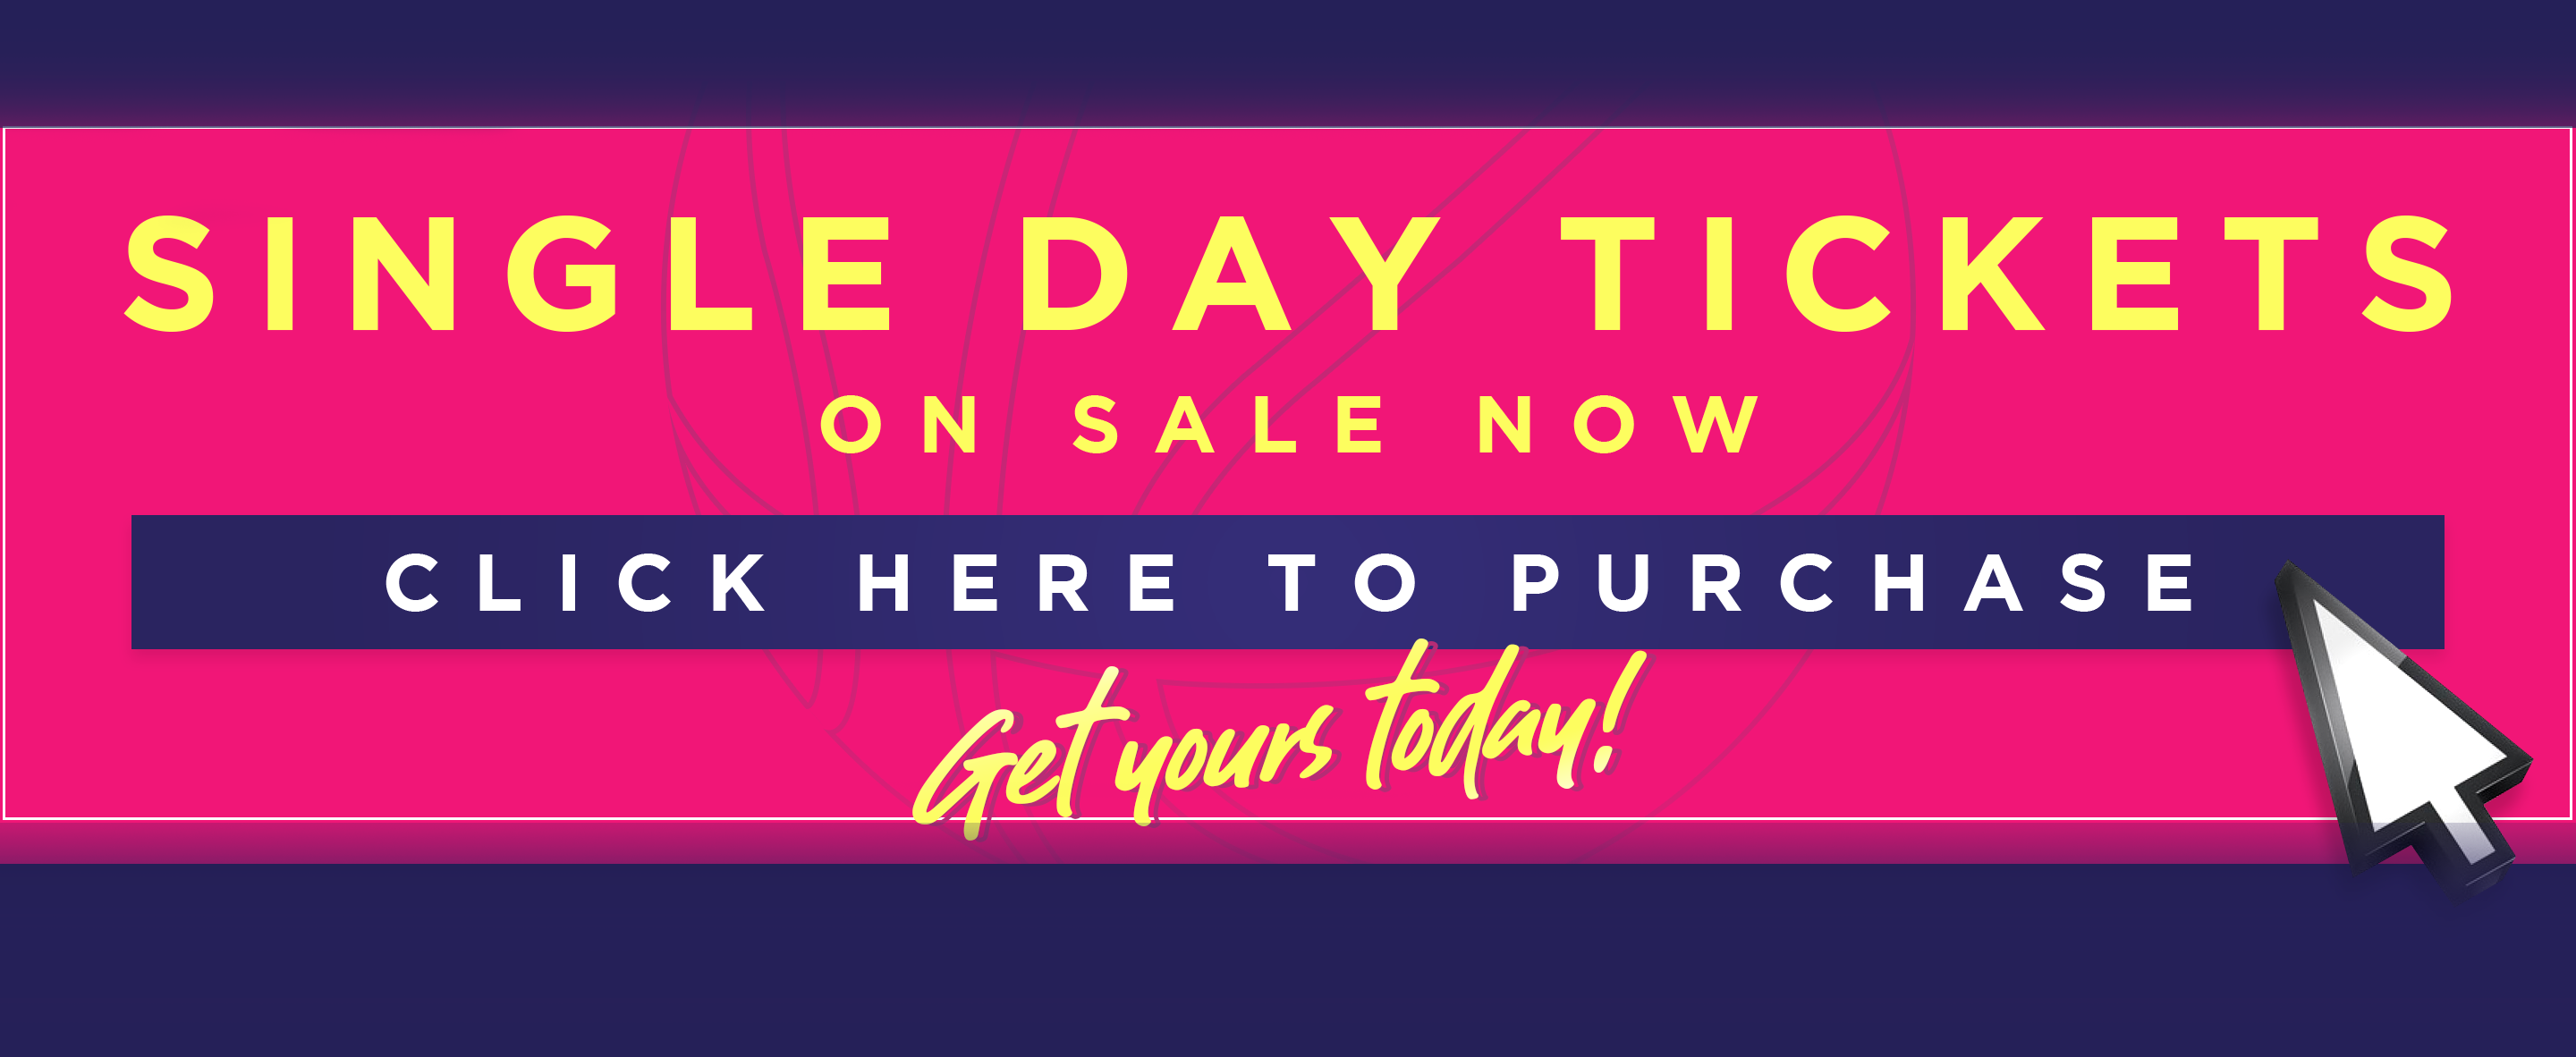 Single Day Tickets – Themed